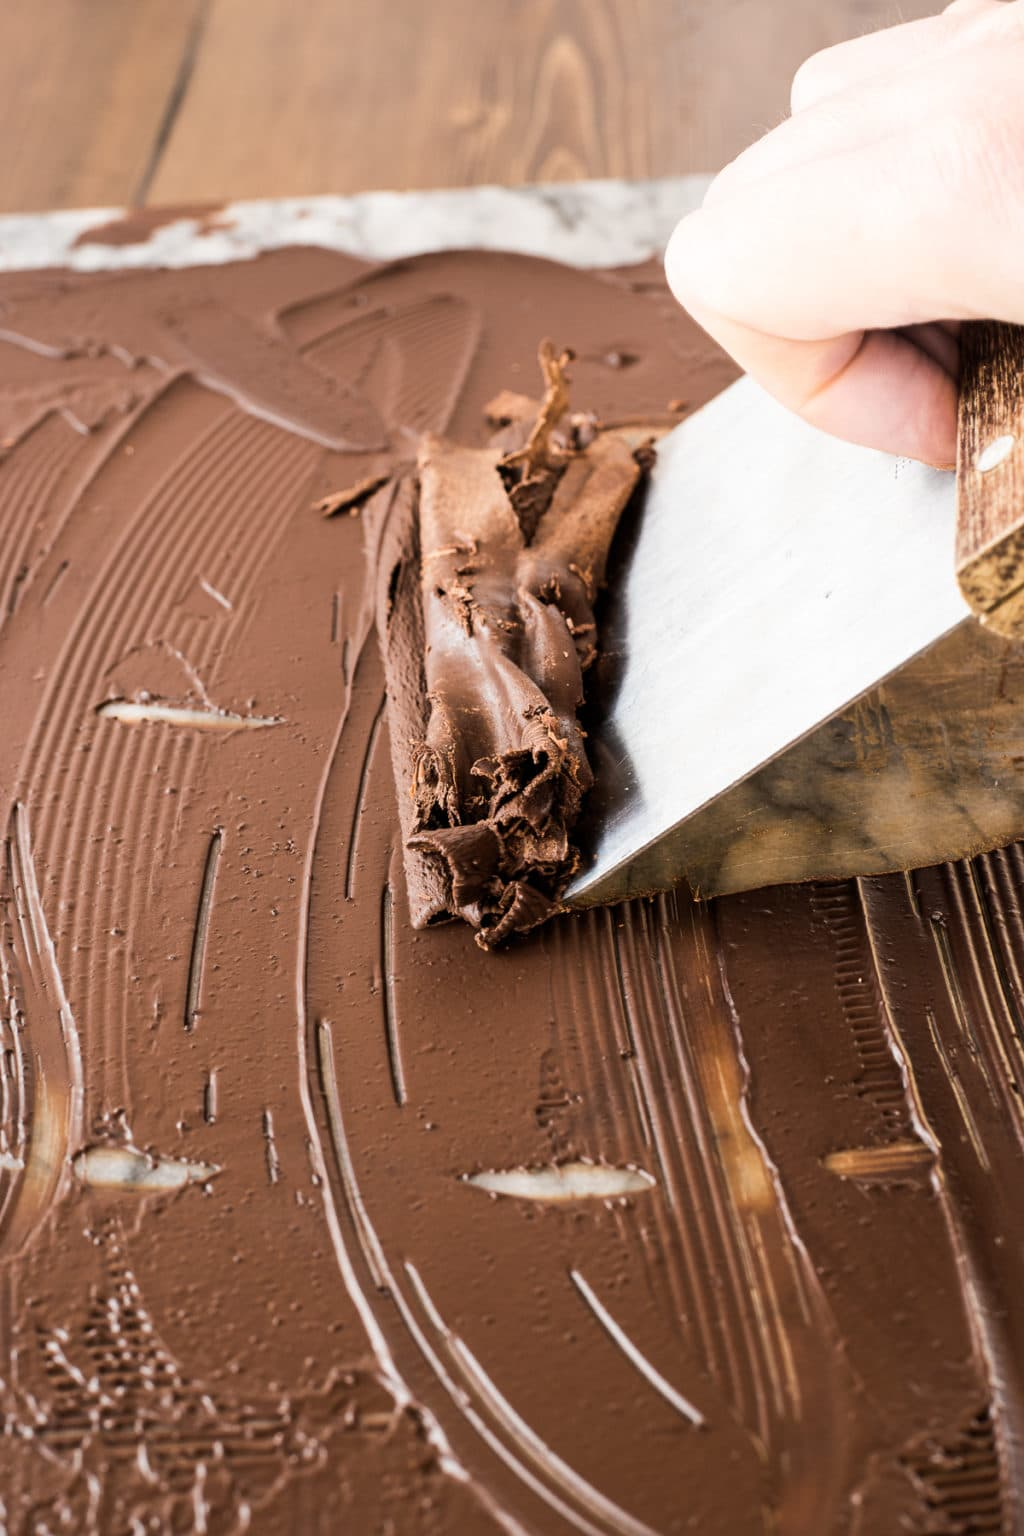 Melted chocolate on a marble board being pushed with a pastry scraper to create large flakes and ribbons of dark chocolate